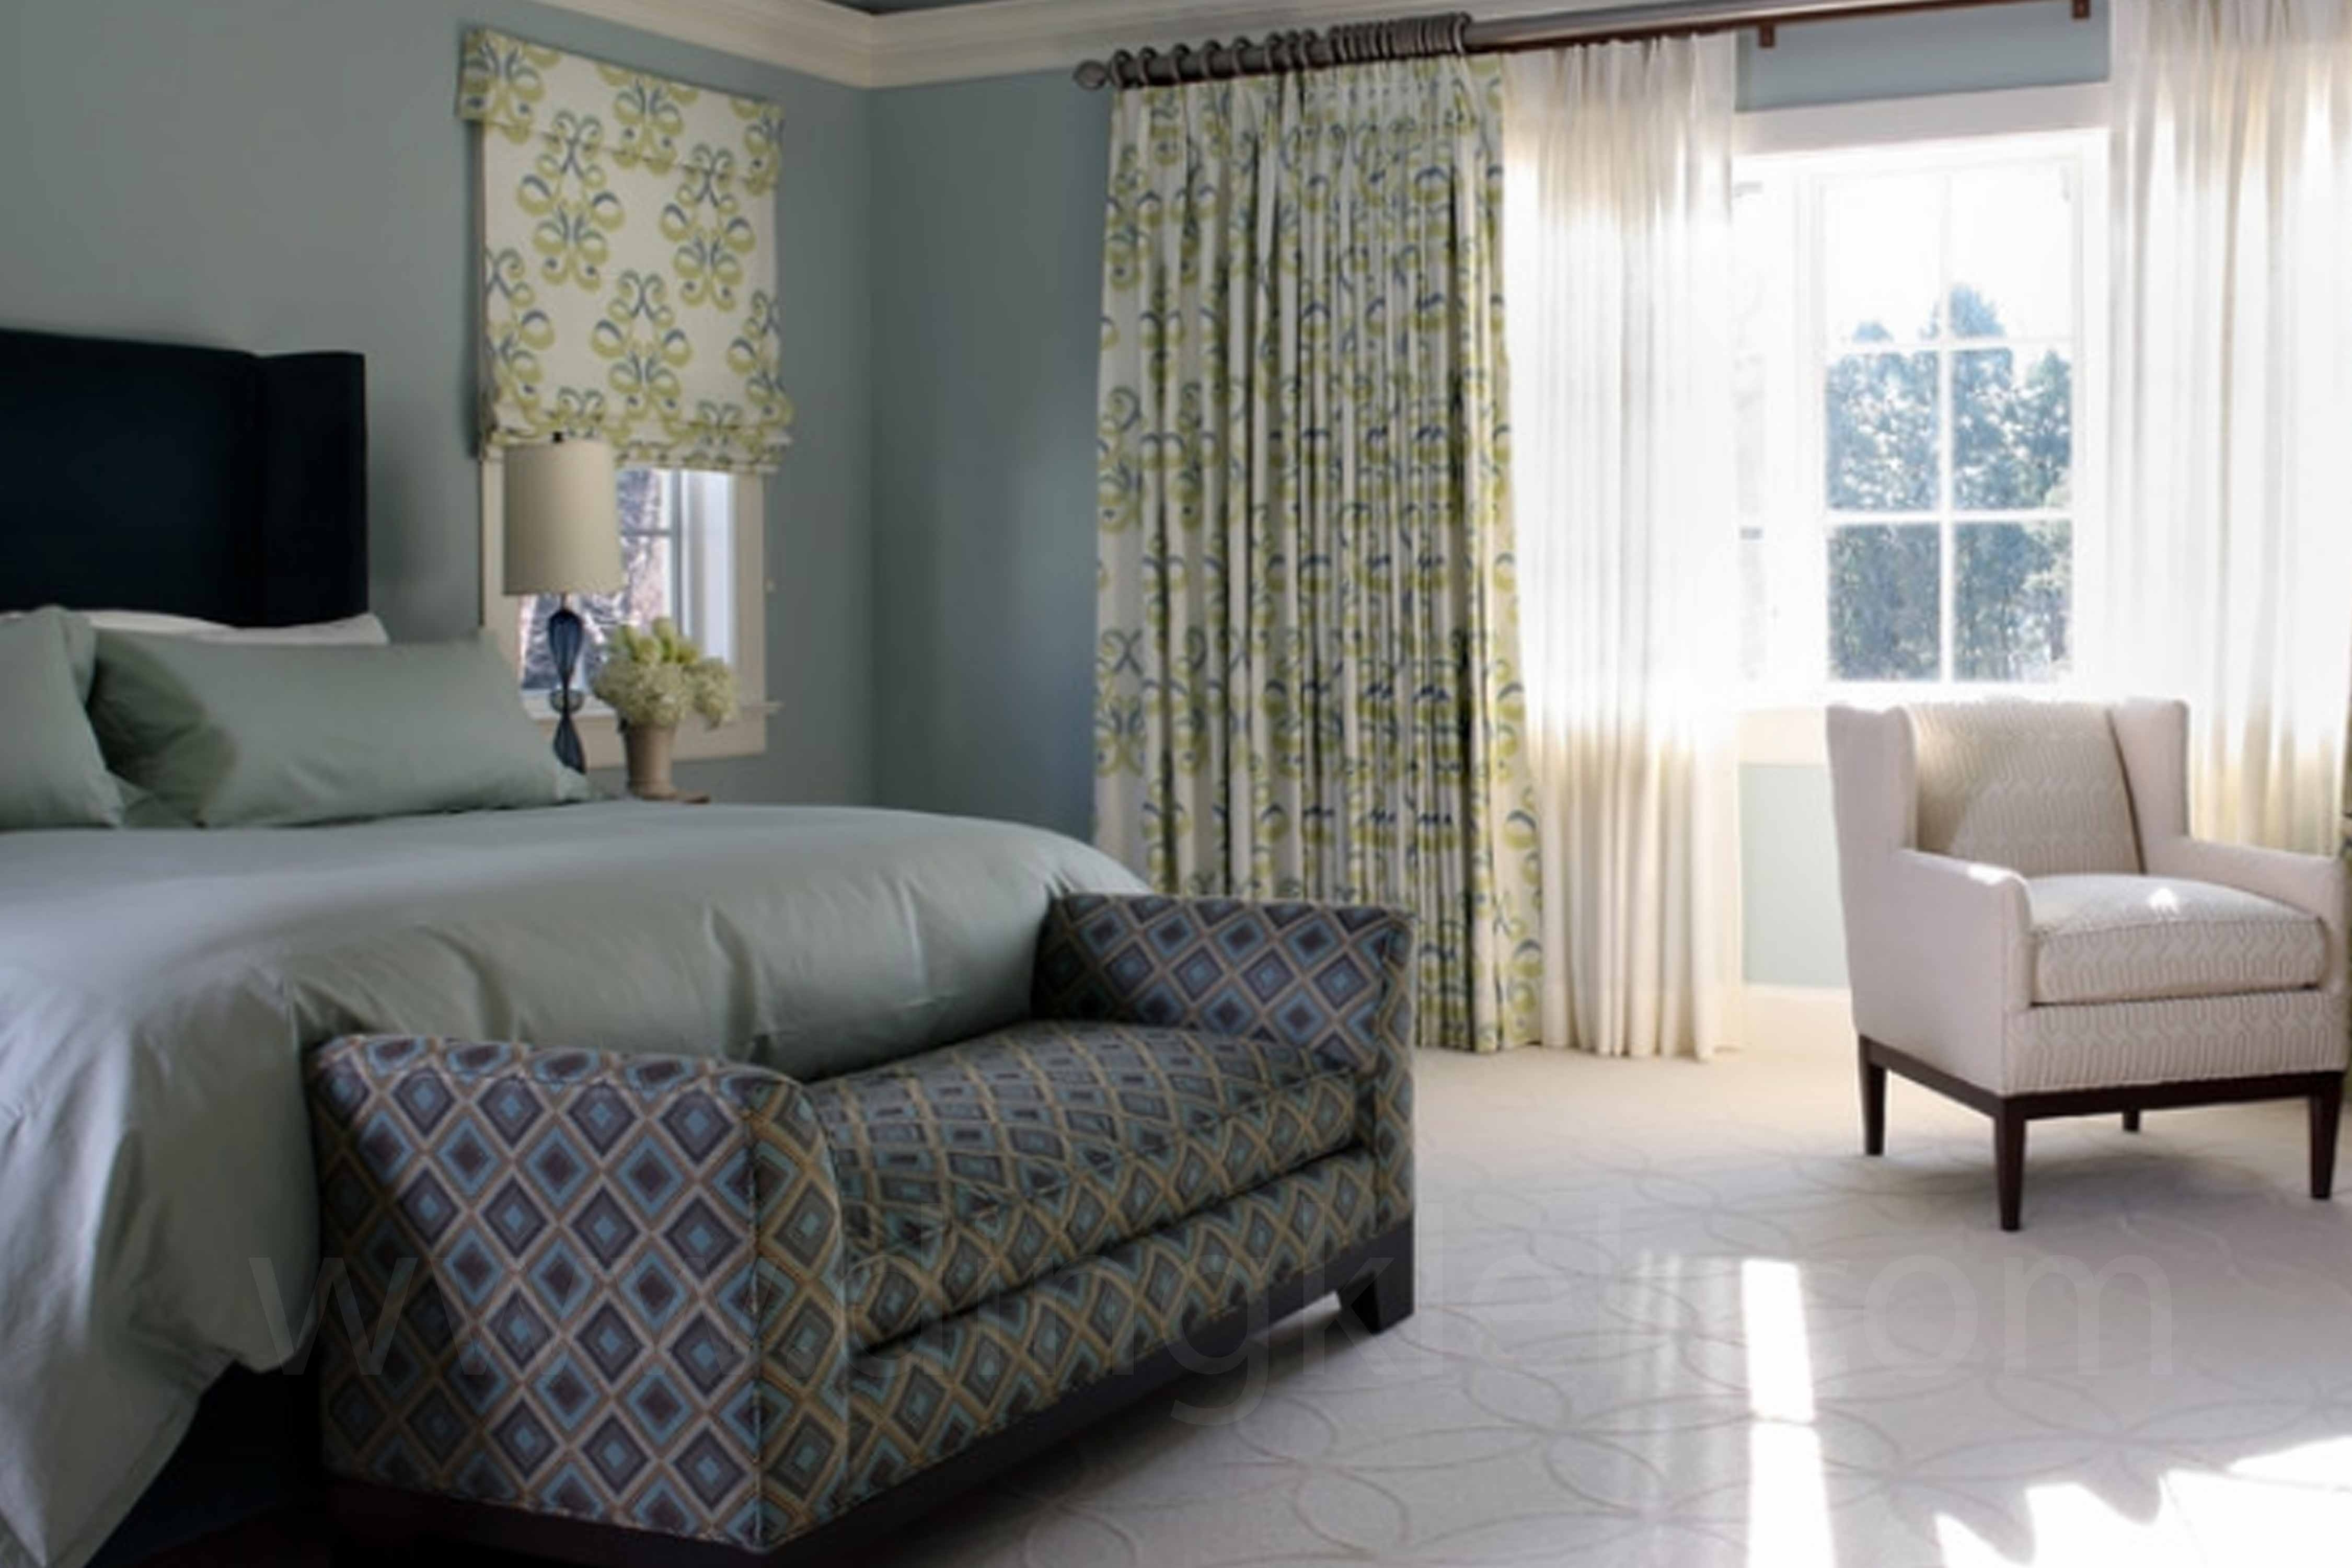 Beautiful Bedroom Sofas 20 About Remodel Office Sofa Ideas With With Regard To Bedroom Sofas (View 2 of 10)